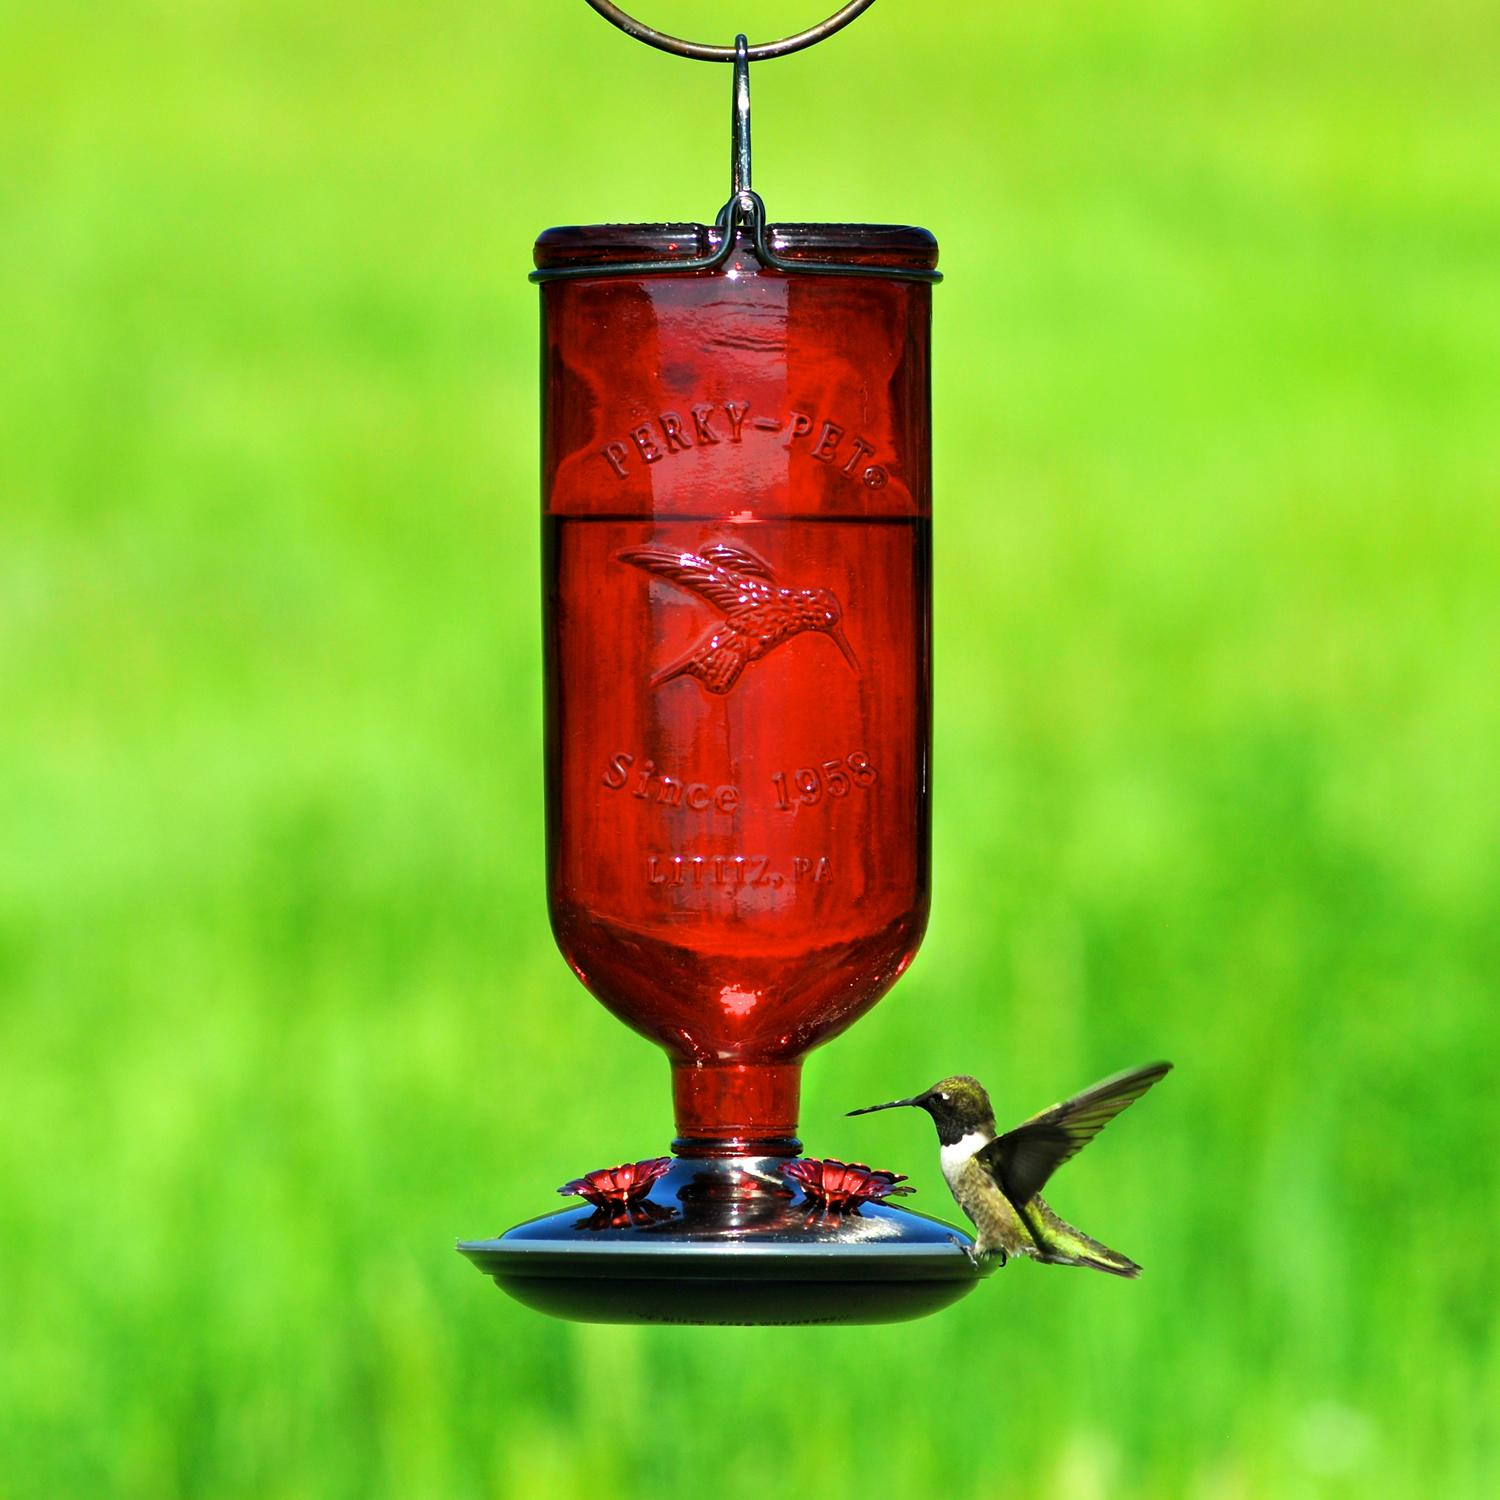 Perky Pet Red 16 Oz Antique Glass Bottle Hummingbird Feeder